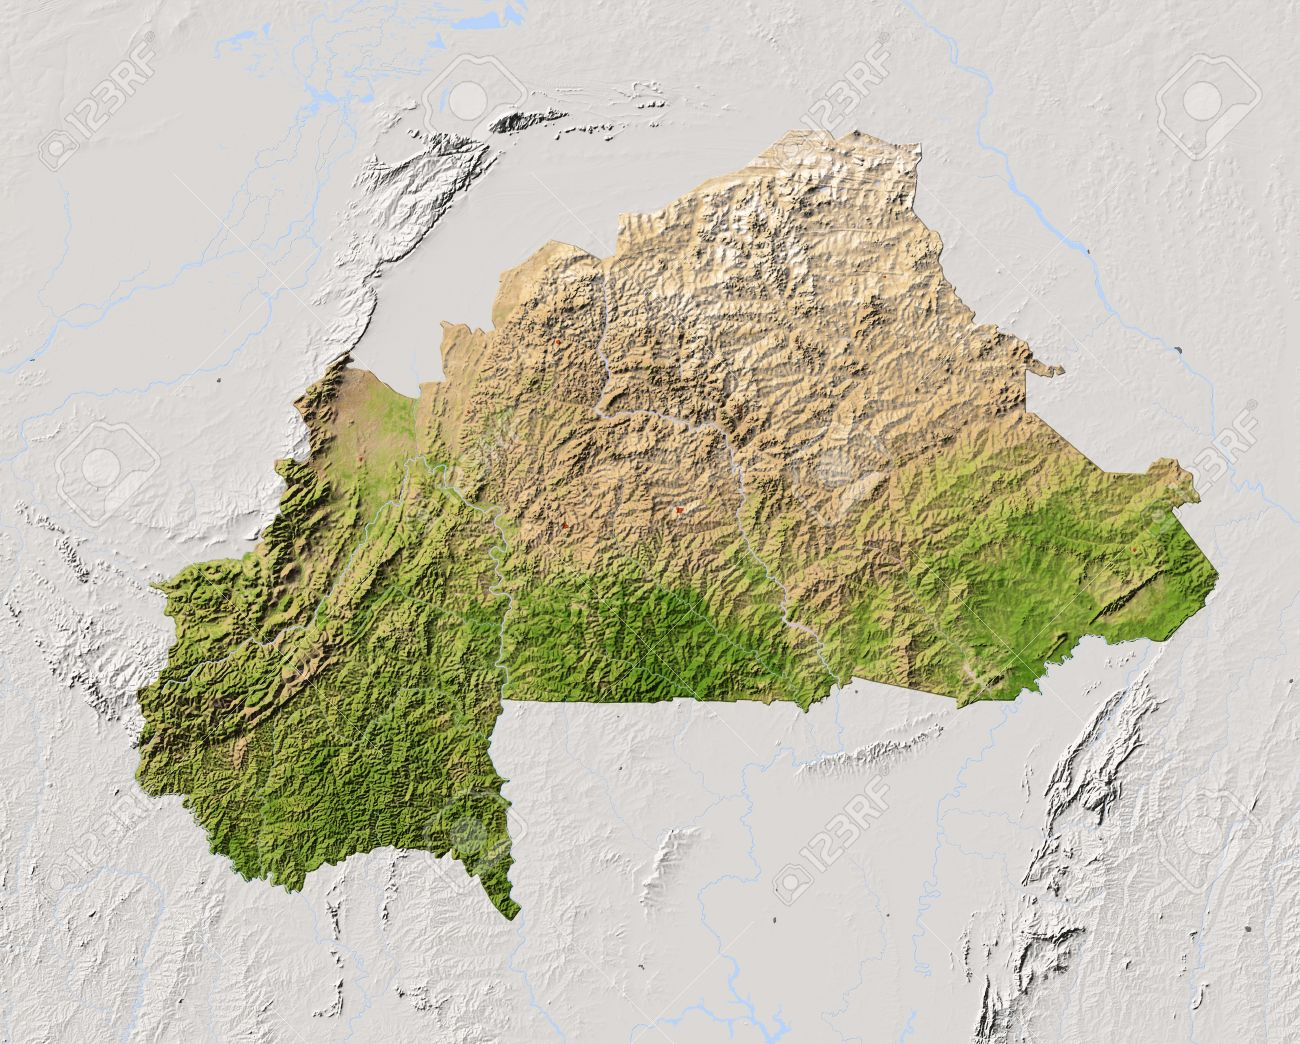 Burkina Faso Shaded Relief Map Surrounding Territory Greyed